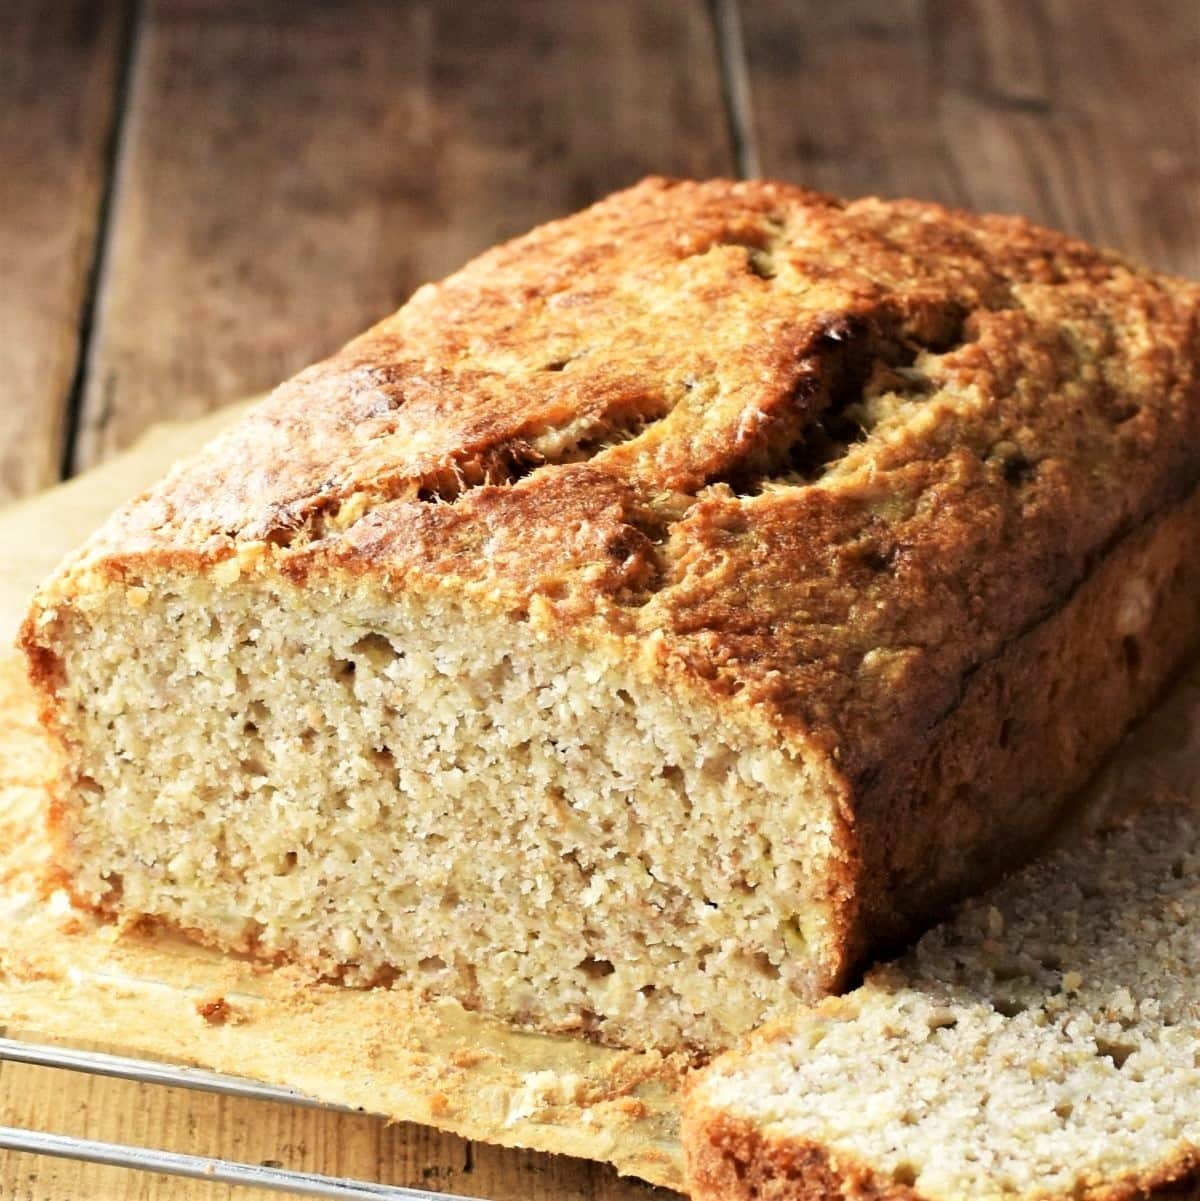 Close-up side view of banana bread with quinoa on top of parchment.